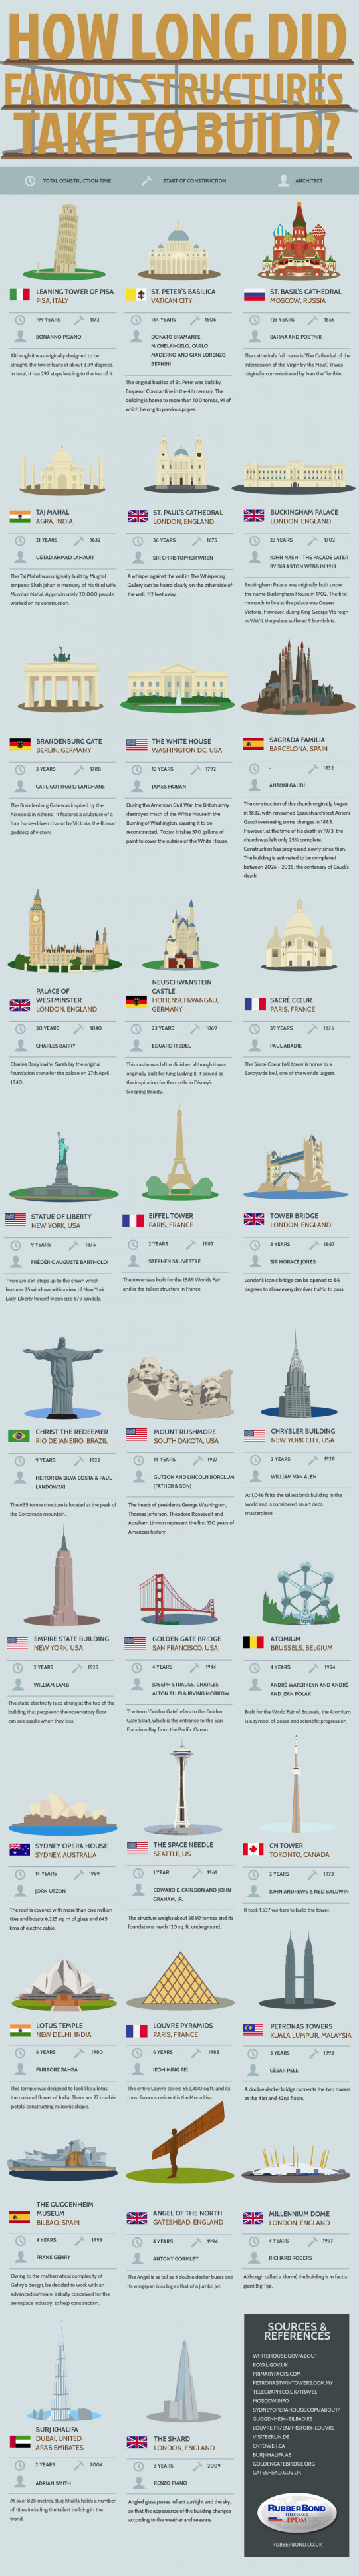 How Long Did Famous Structures Take to Build?